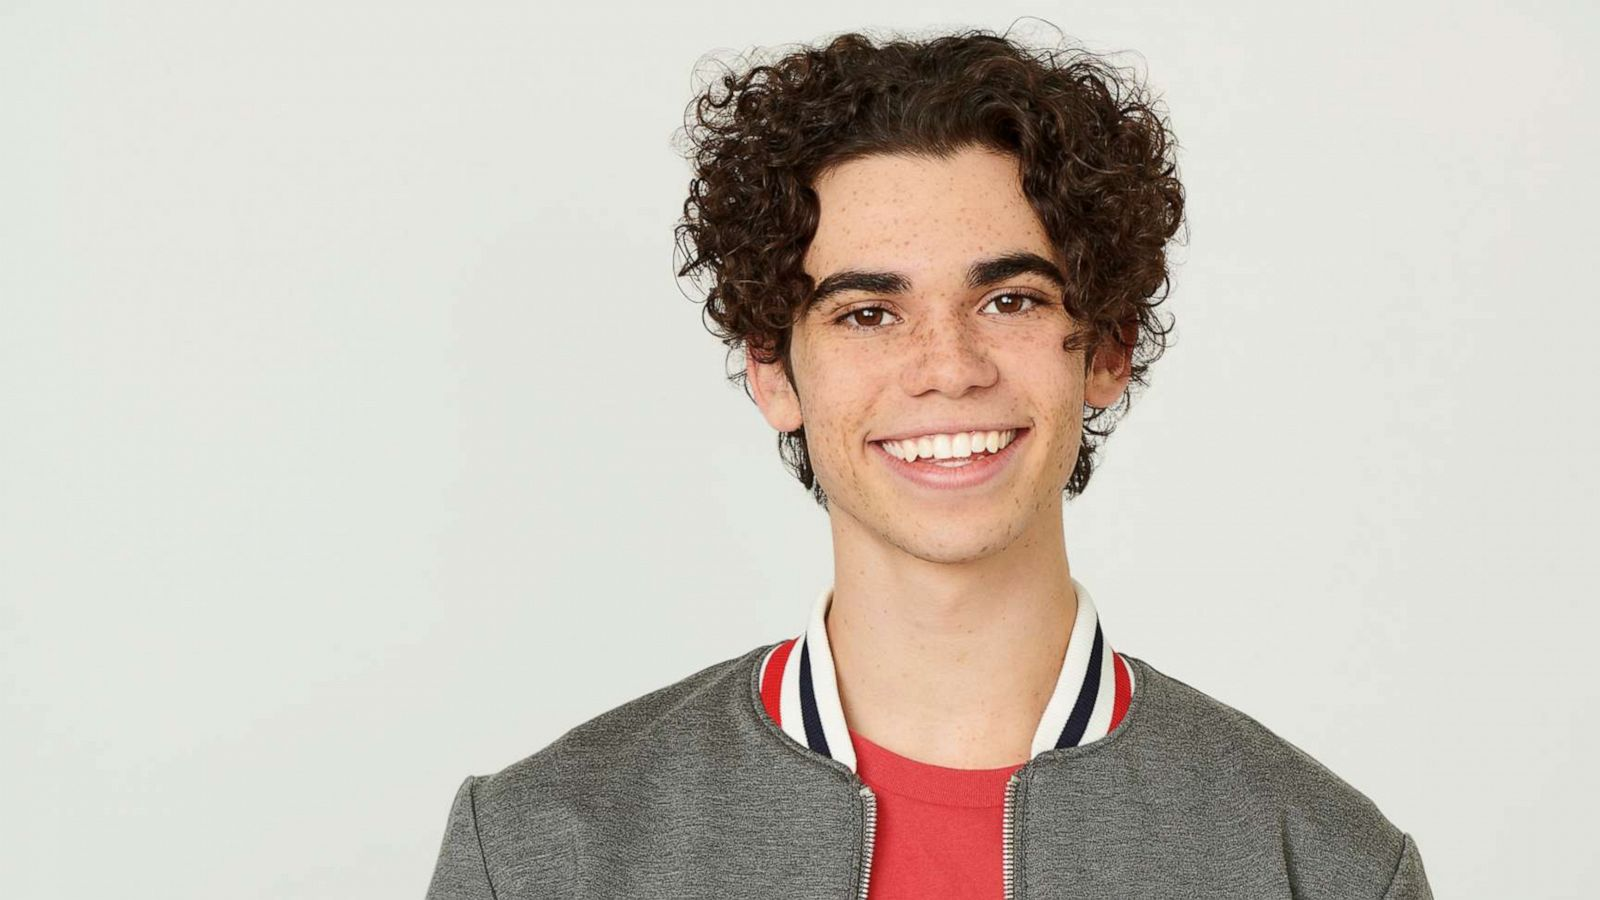 Cameron Boyce American Actor, Dancer